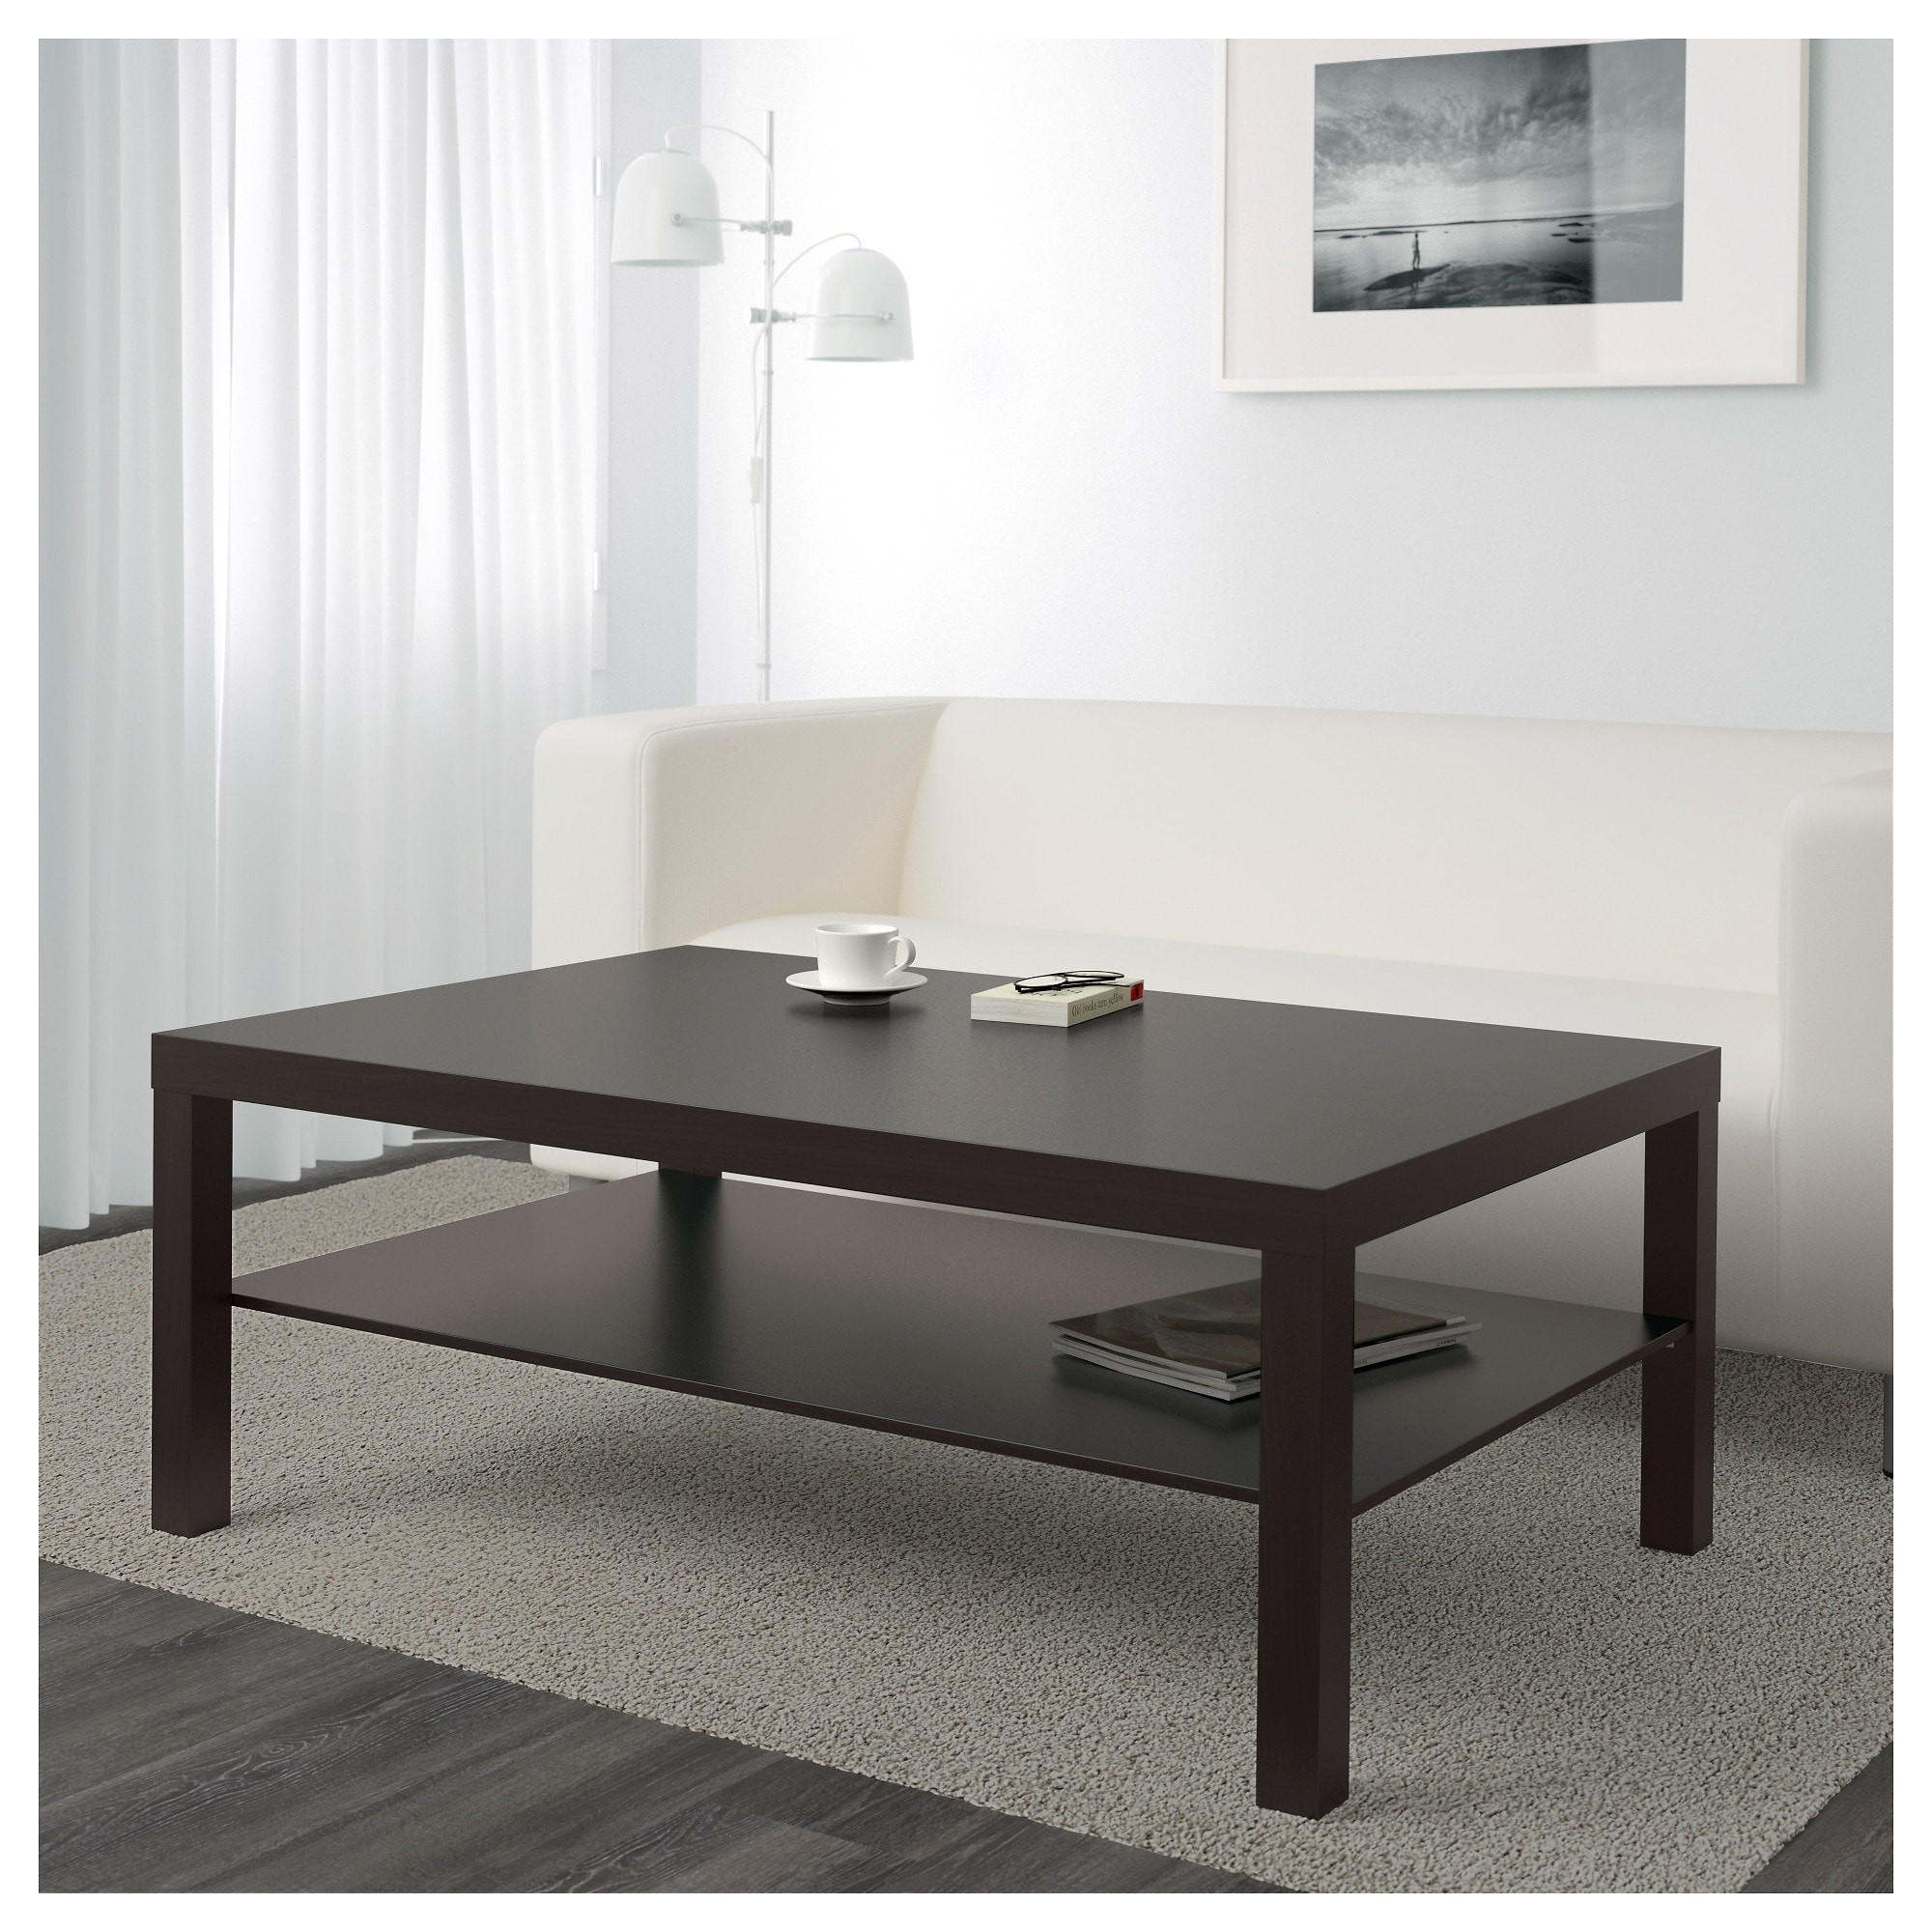 Best ideas about Lack Coffee Table . Save or Pin LACK Coffee table Black brown 118 x 78 cm IKEA Now.